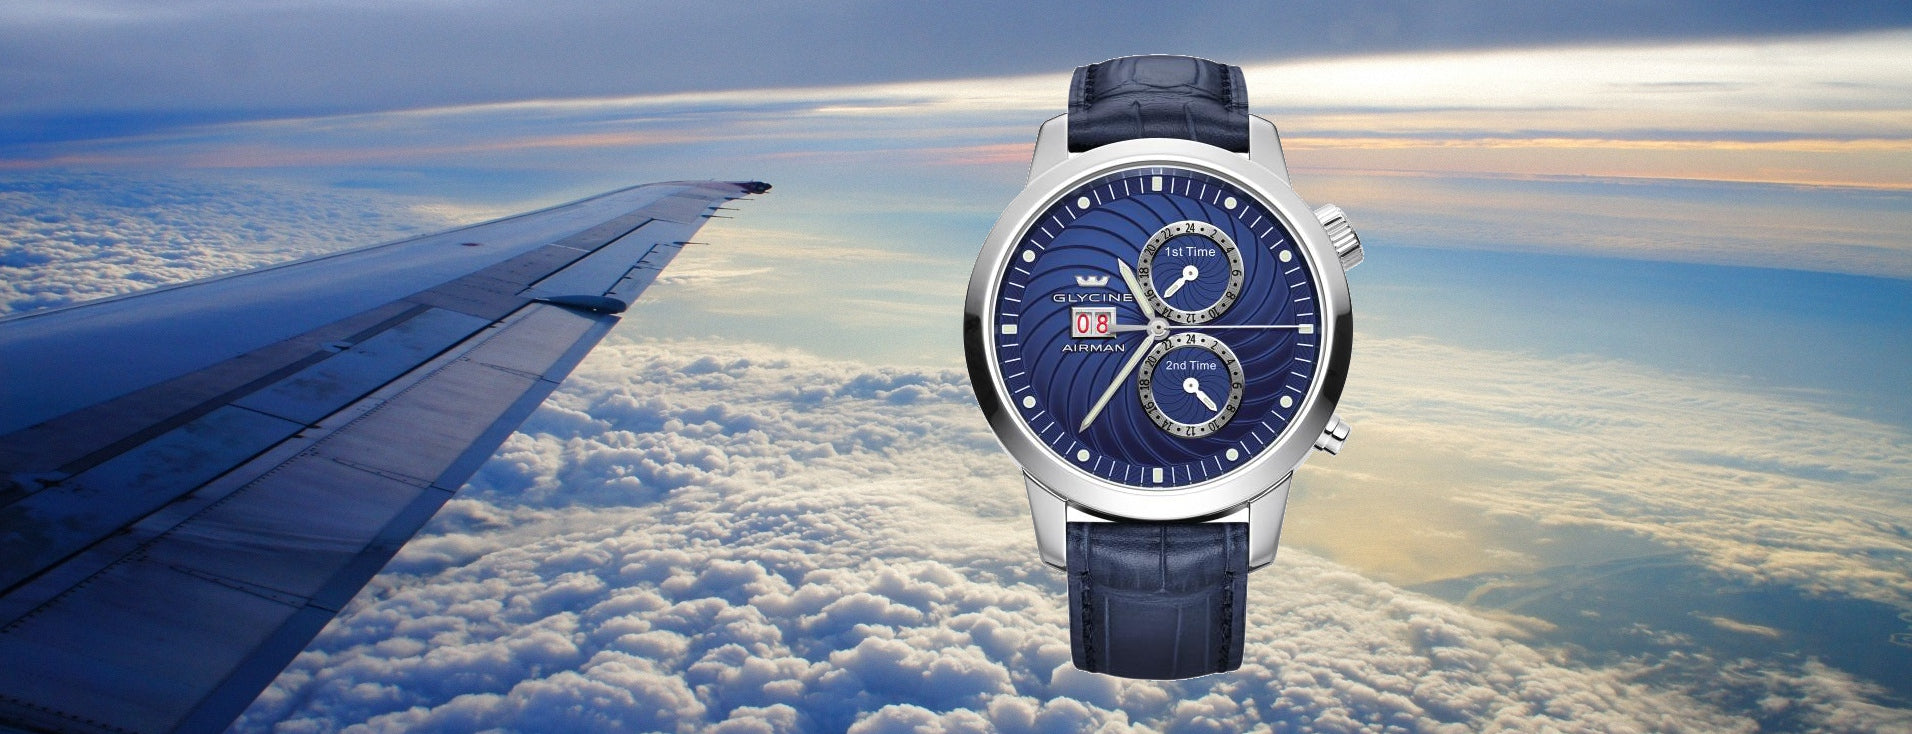 Glycine Airman 7 in dark blue